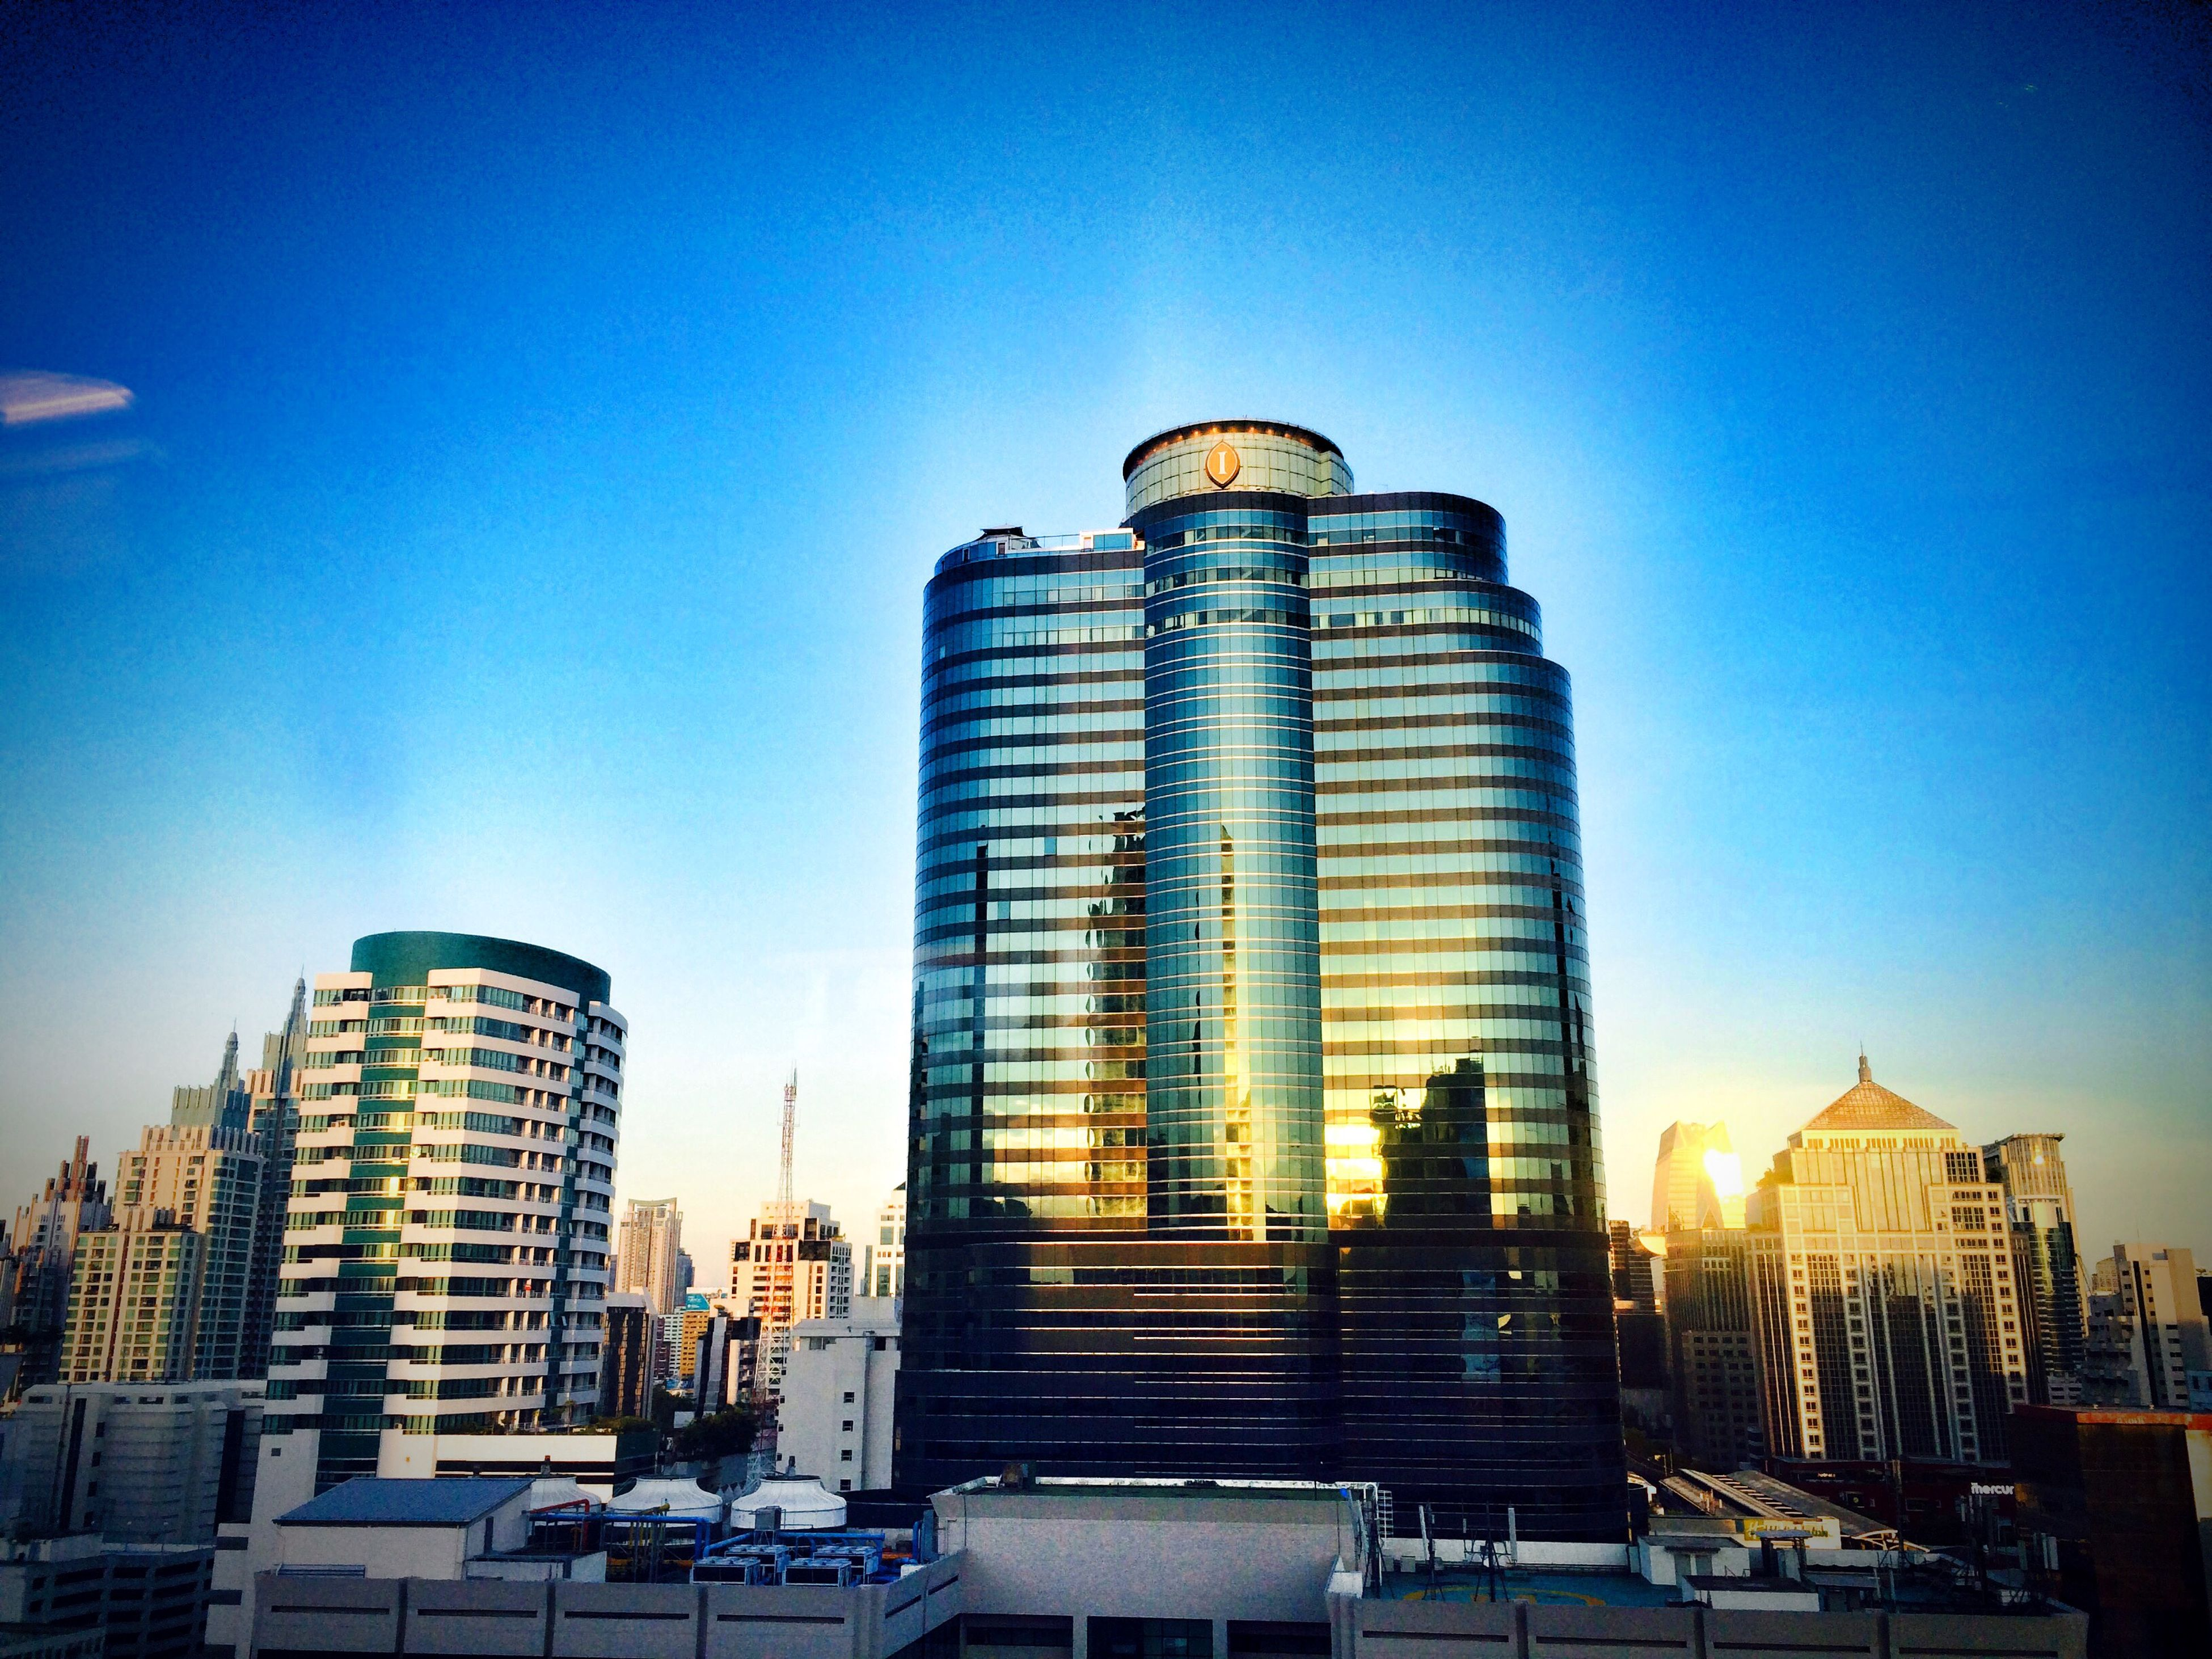 building exterior, architecture, built structure, clear sky, low angle view, blue, city, tall - high, tower, skyscraper, modern, illuminated, sunlight, sky, copy space, building, outdoors, office building, travel destinations, no people